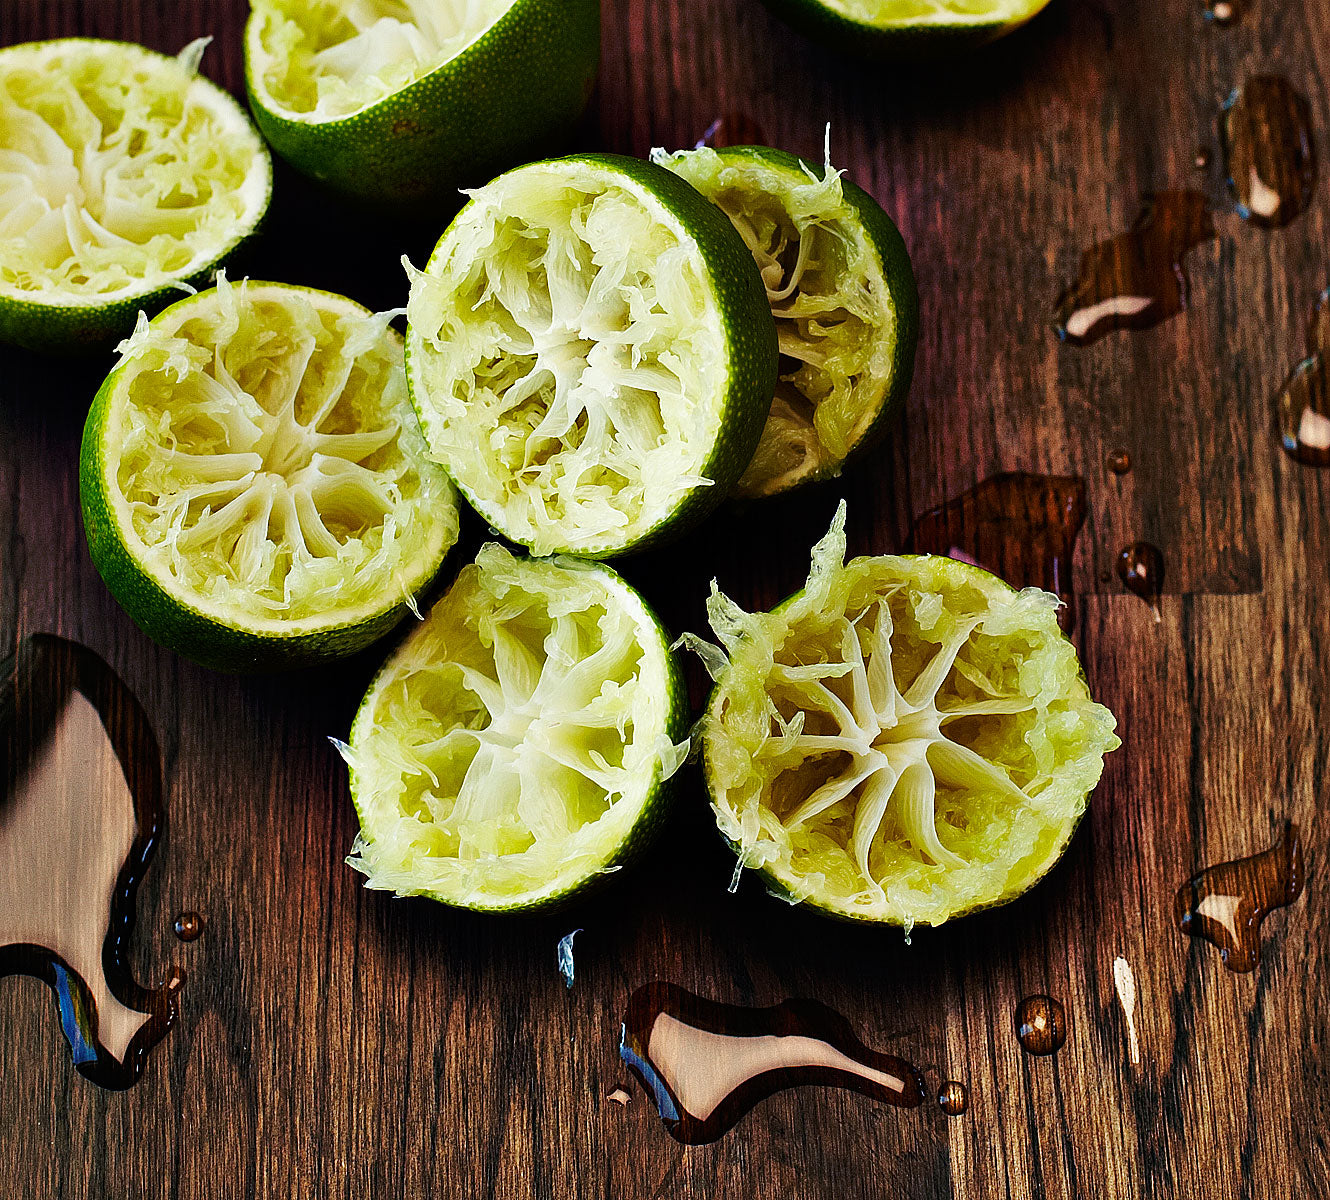 What Causes Price Fluctuations in Limes?